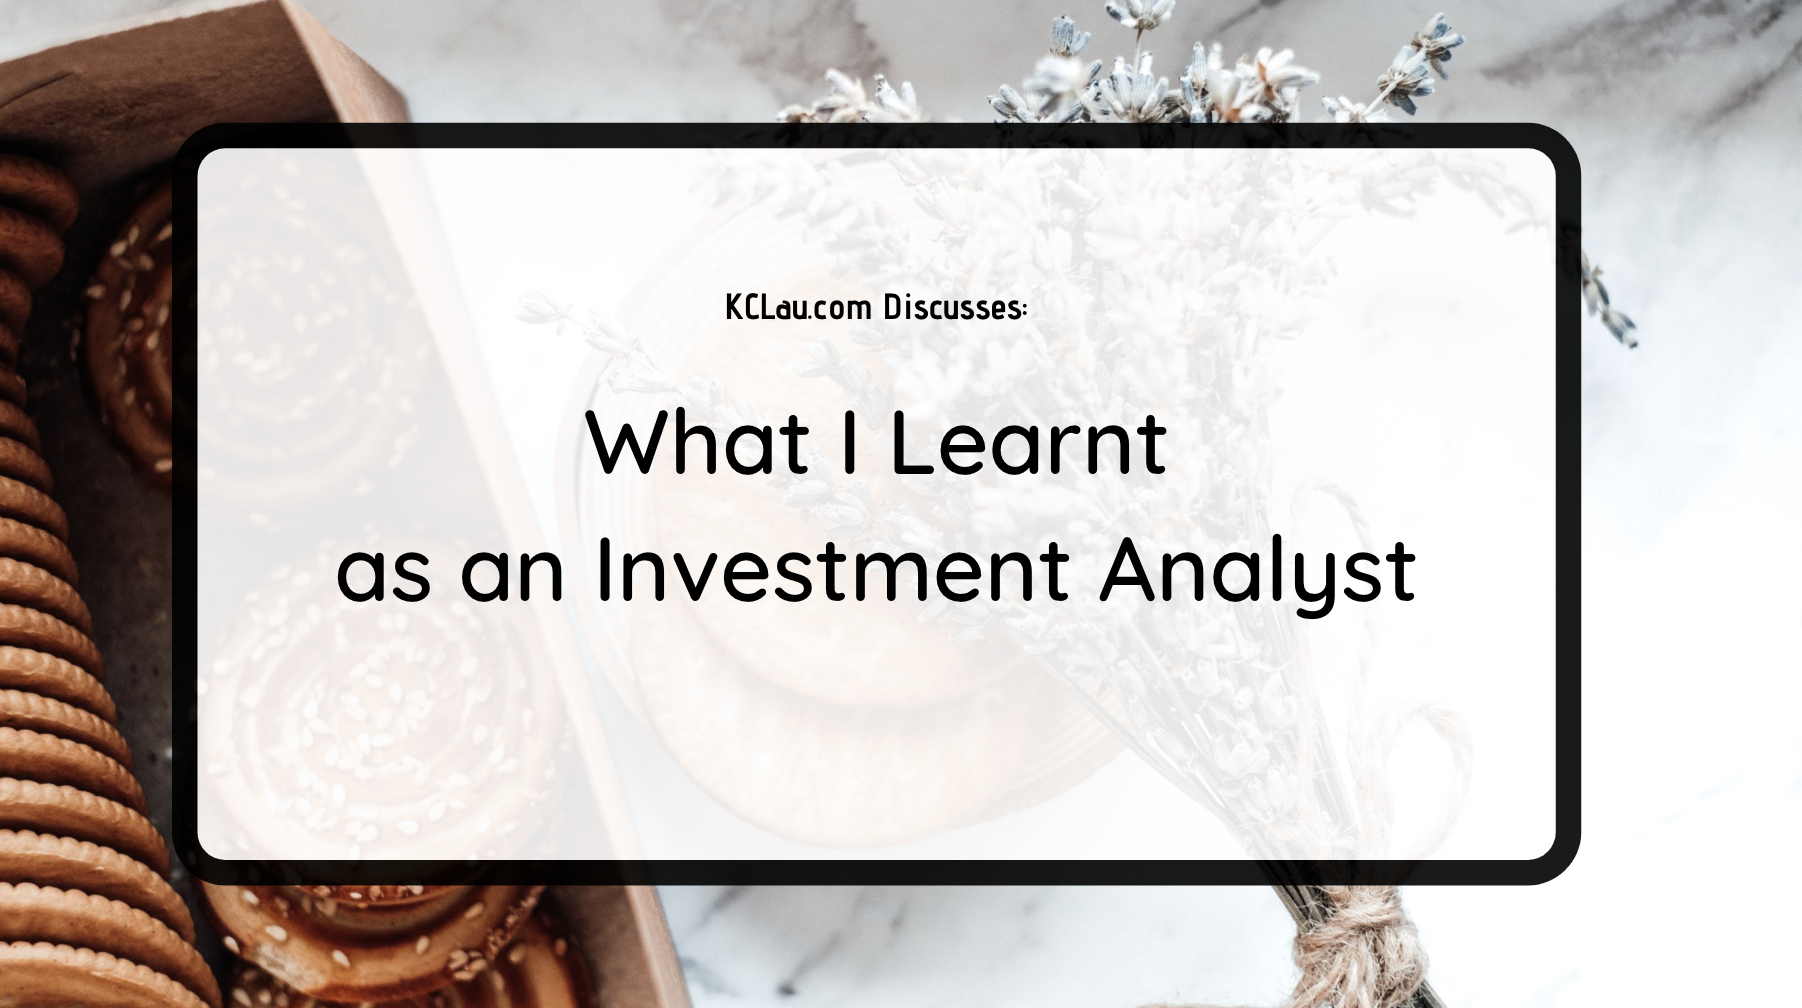 What I Learnt as an Investment Analyst